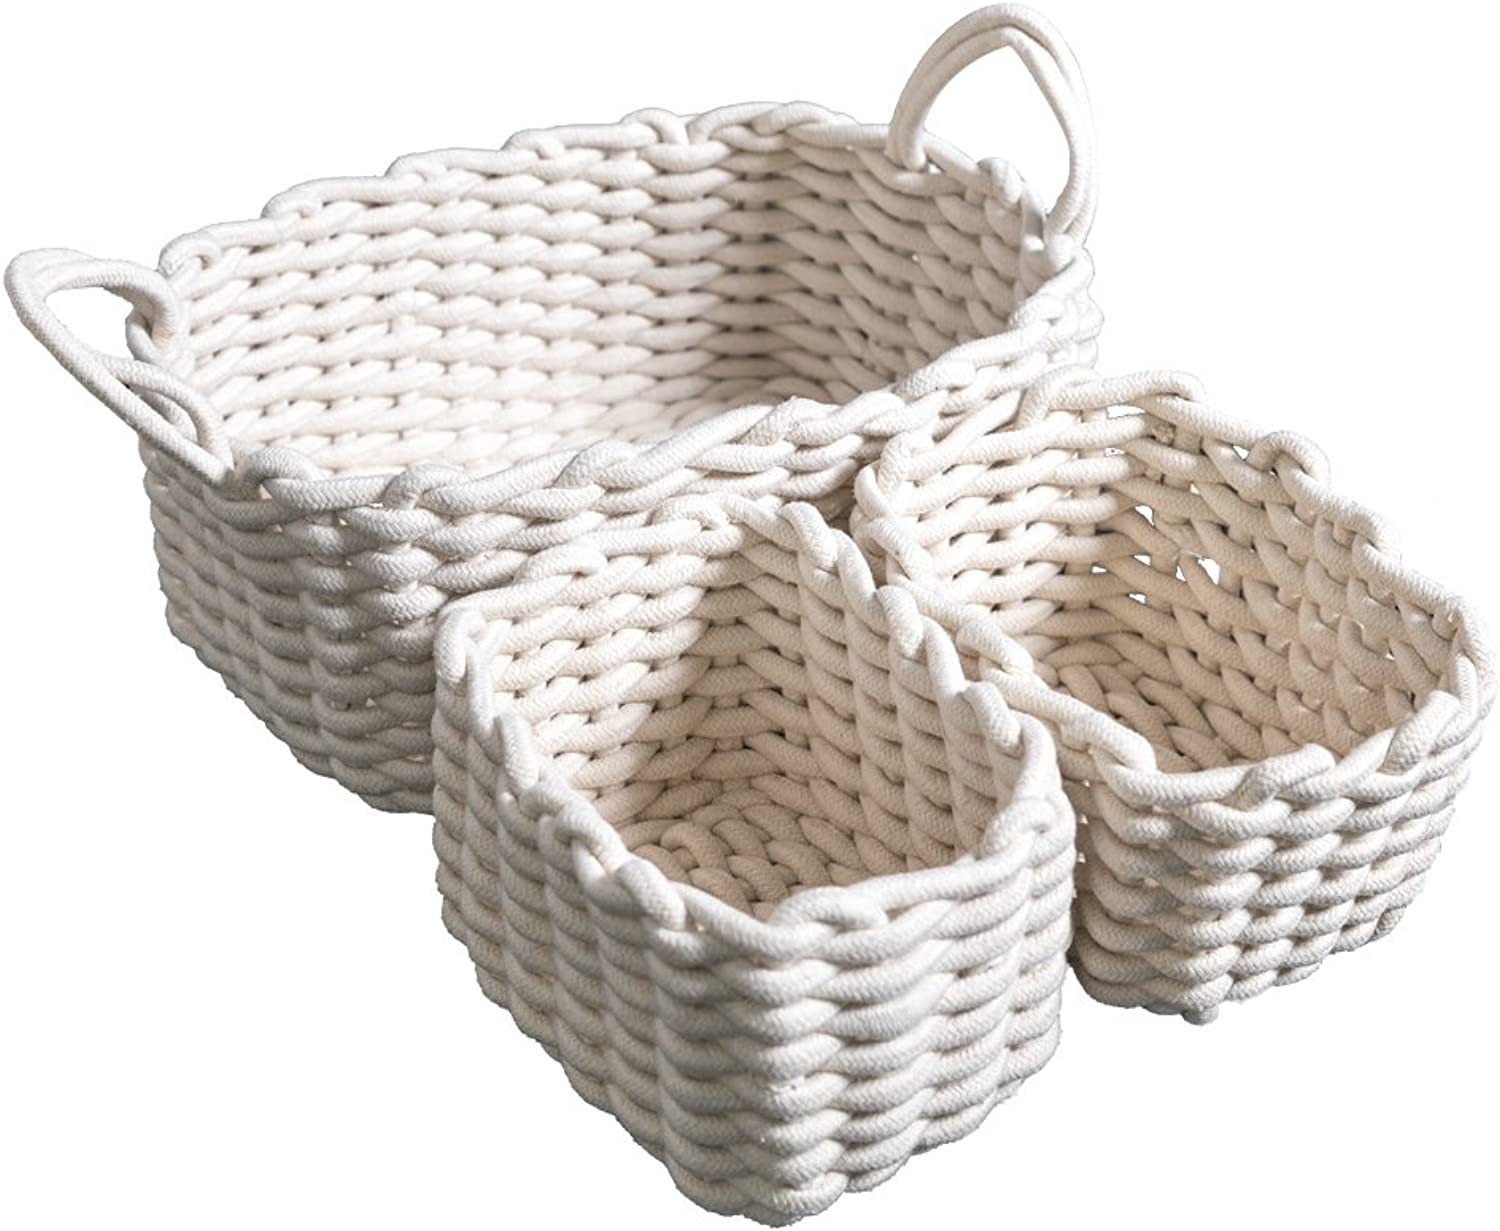 Cutieunion Cotton Woven Storage Baskets with Dual Rope Handles for Toy Storage Durable Nursery Bins(3 Pack,White)